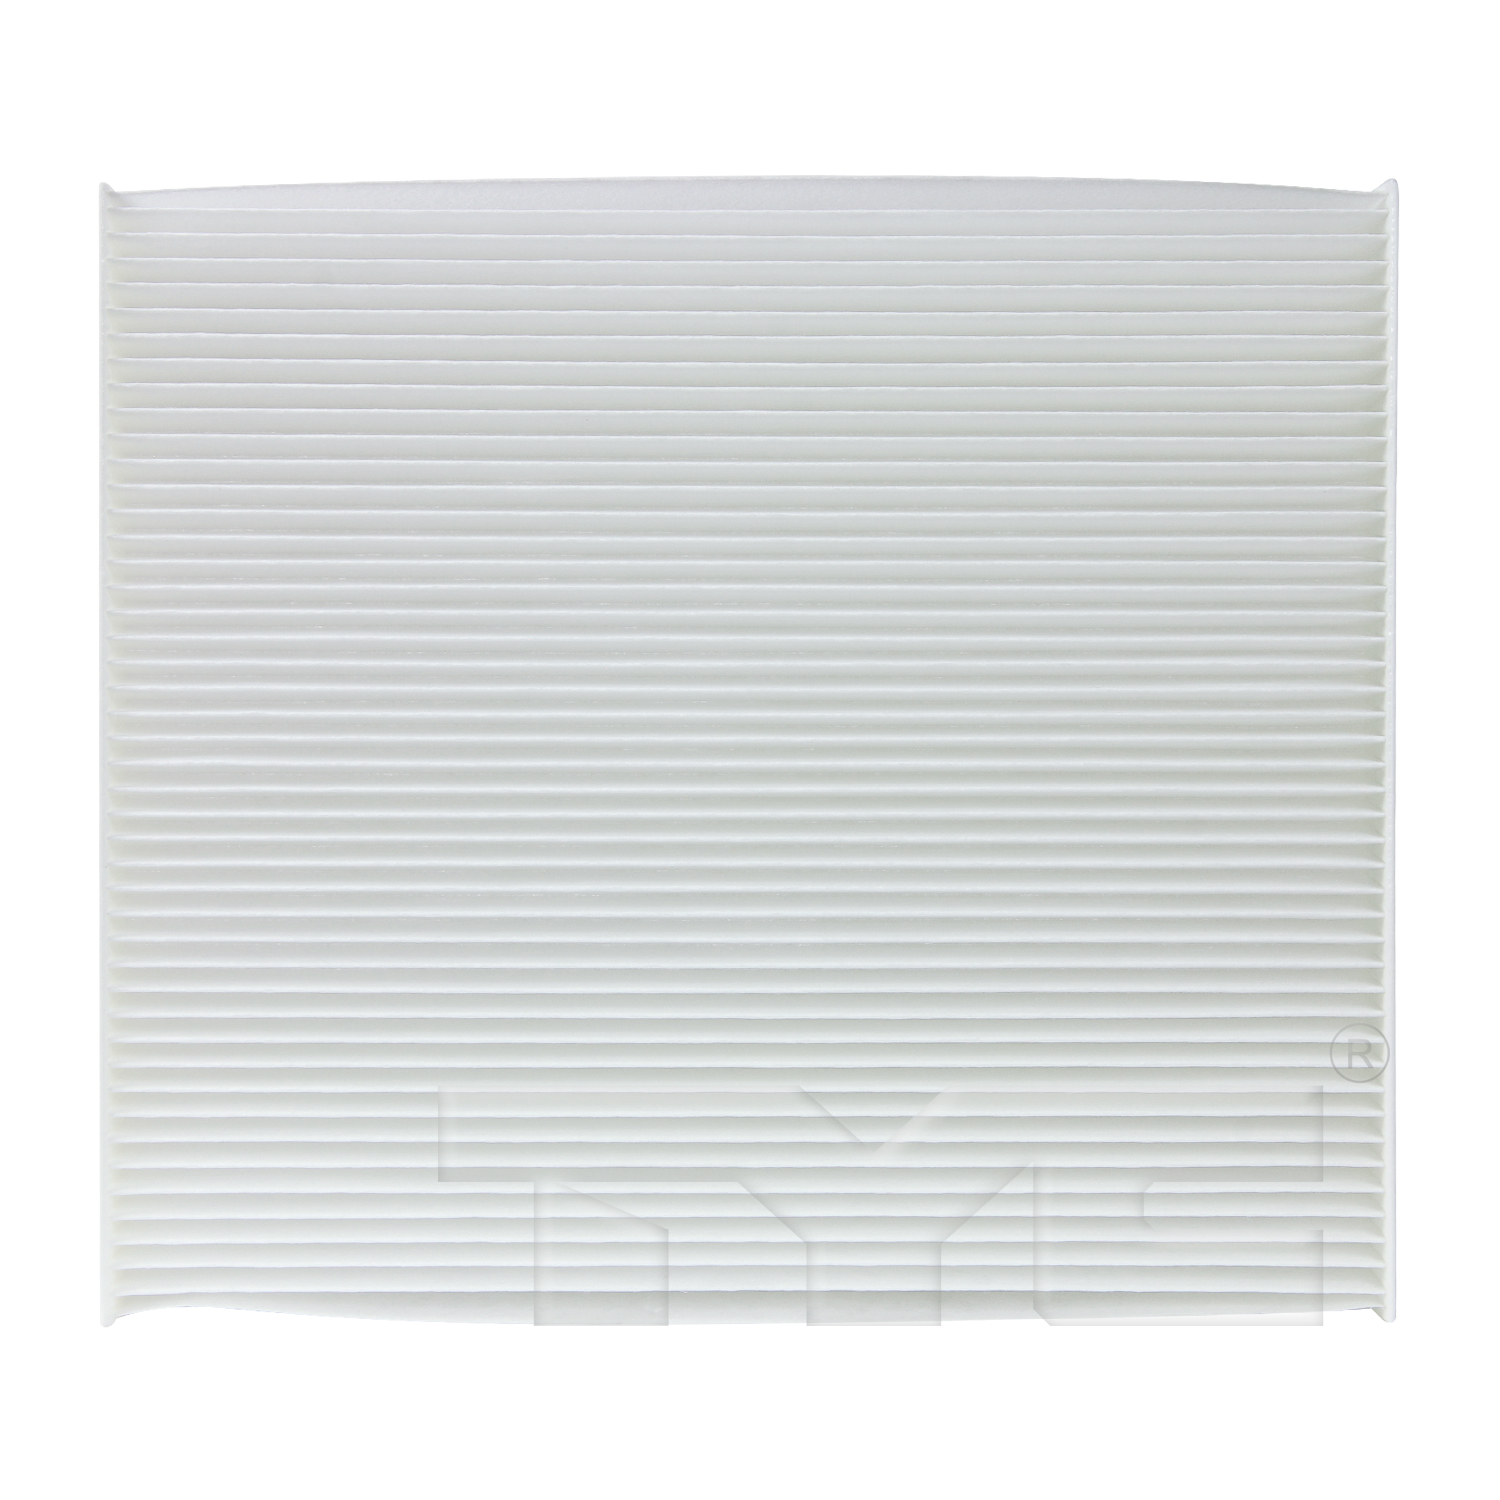 2010 Chevy Equinox Oil Type >> 2008-2009 Saturn VUE /2010-2011 Chevy Equinox In Cabin Air Filter New | eBay